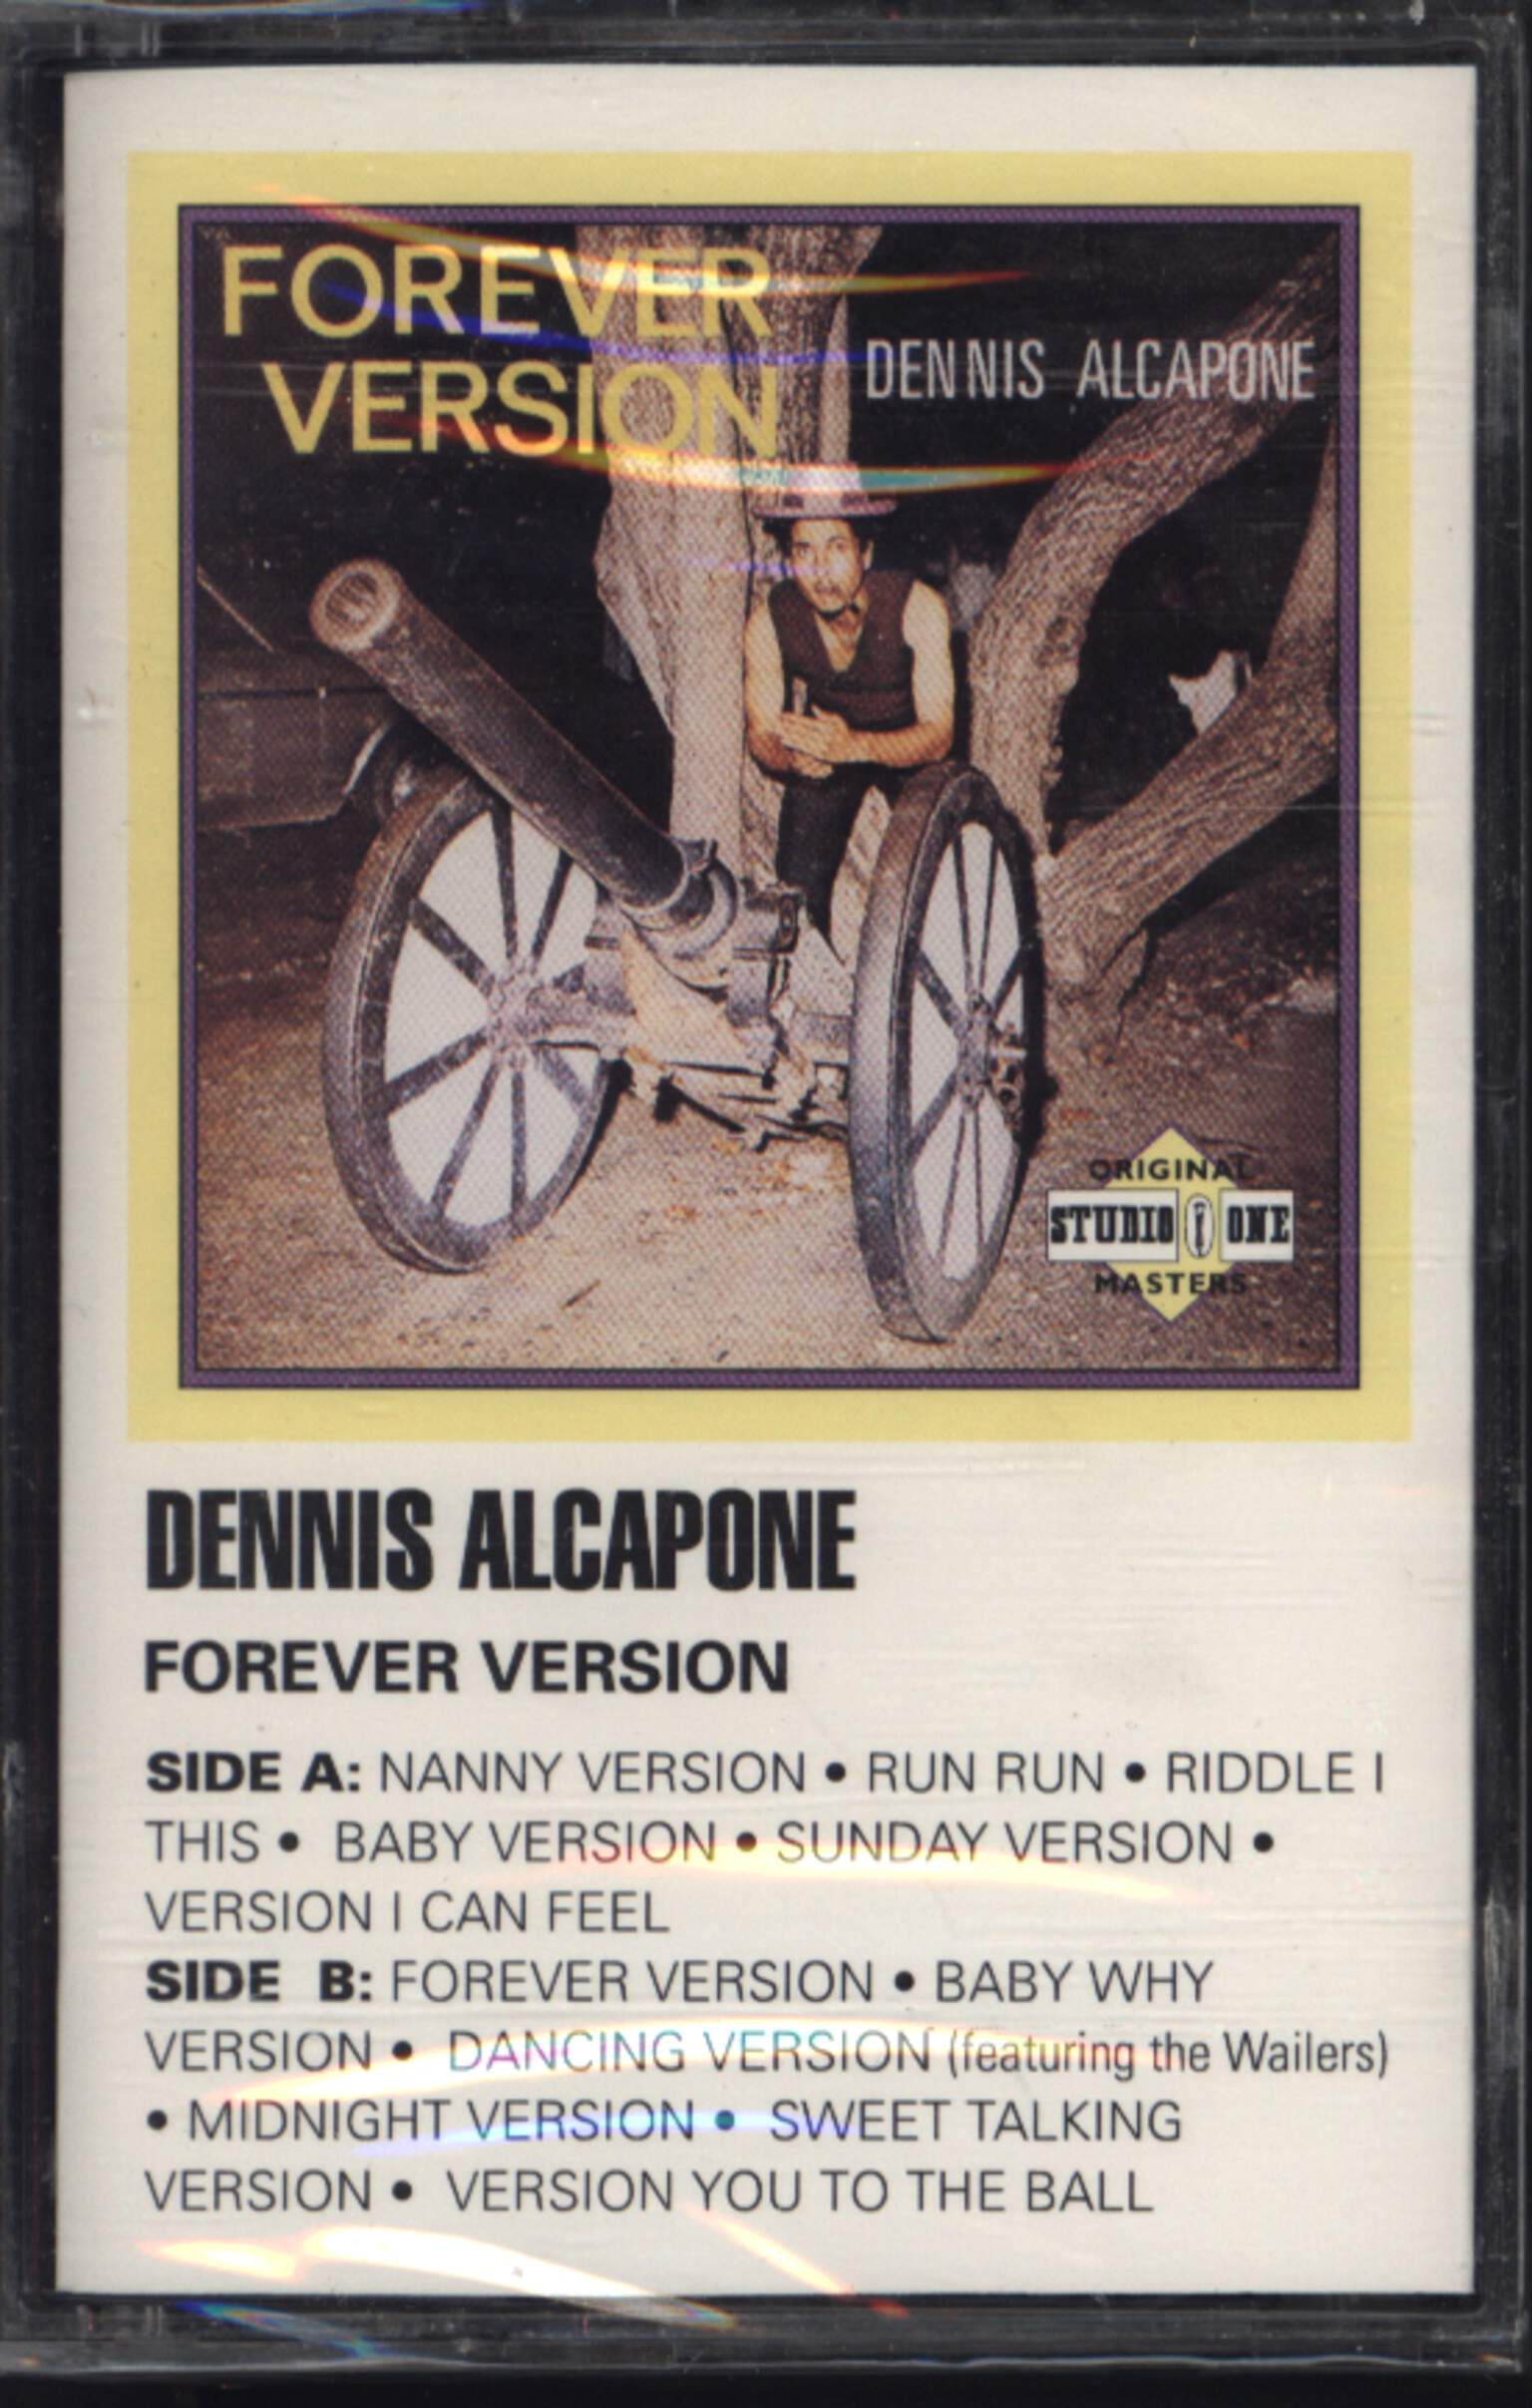 Dennis Alcapone: Forever Version, Compact Cassette